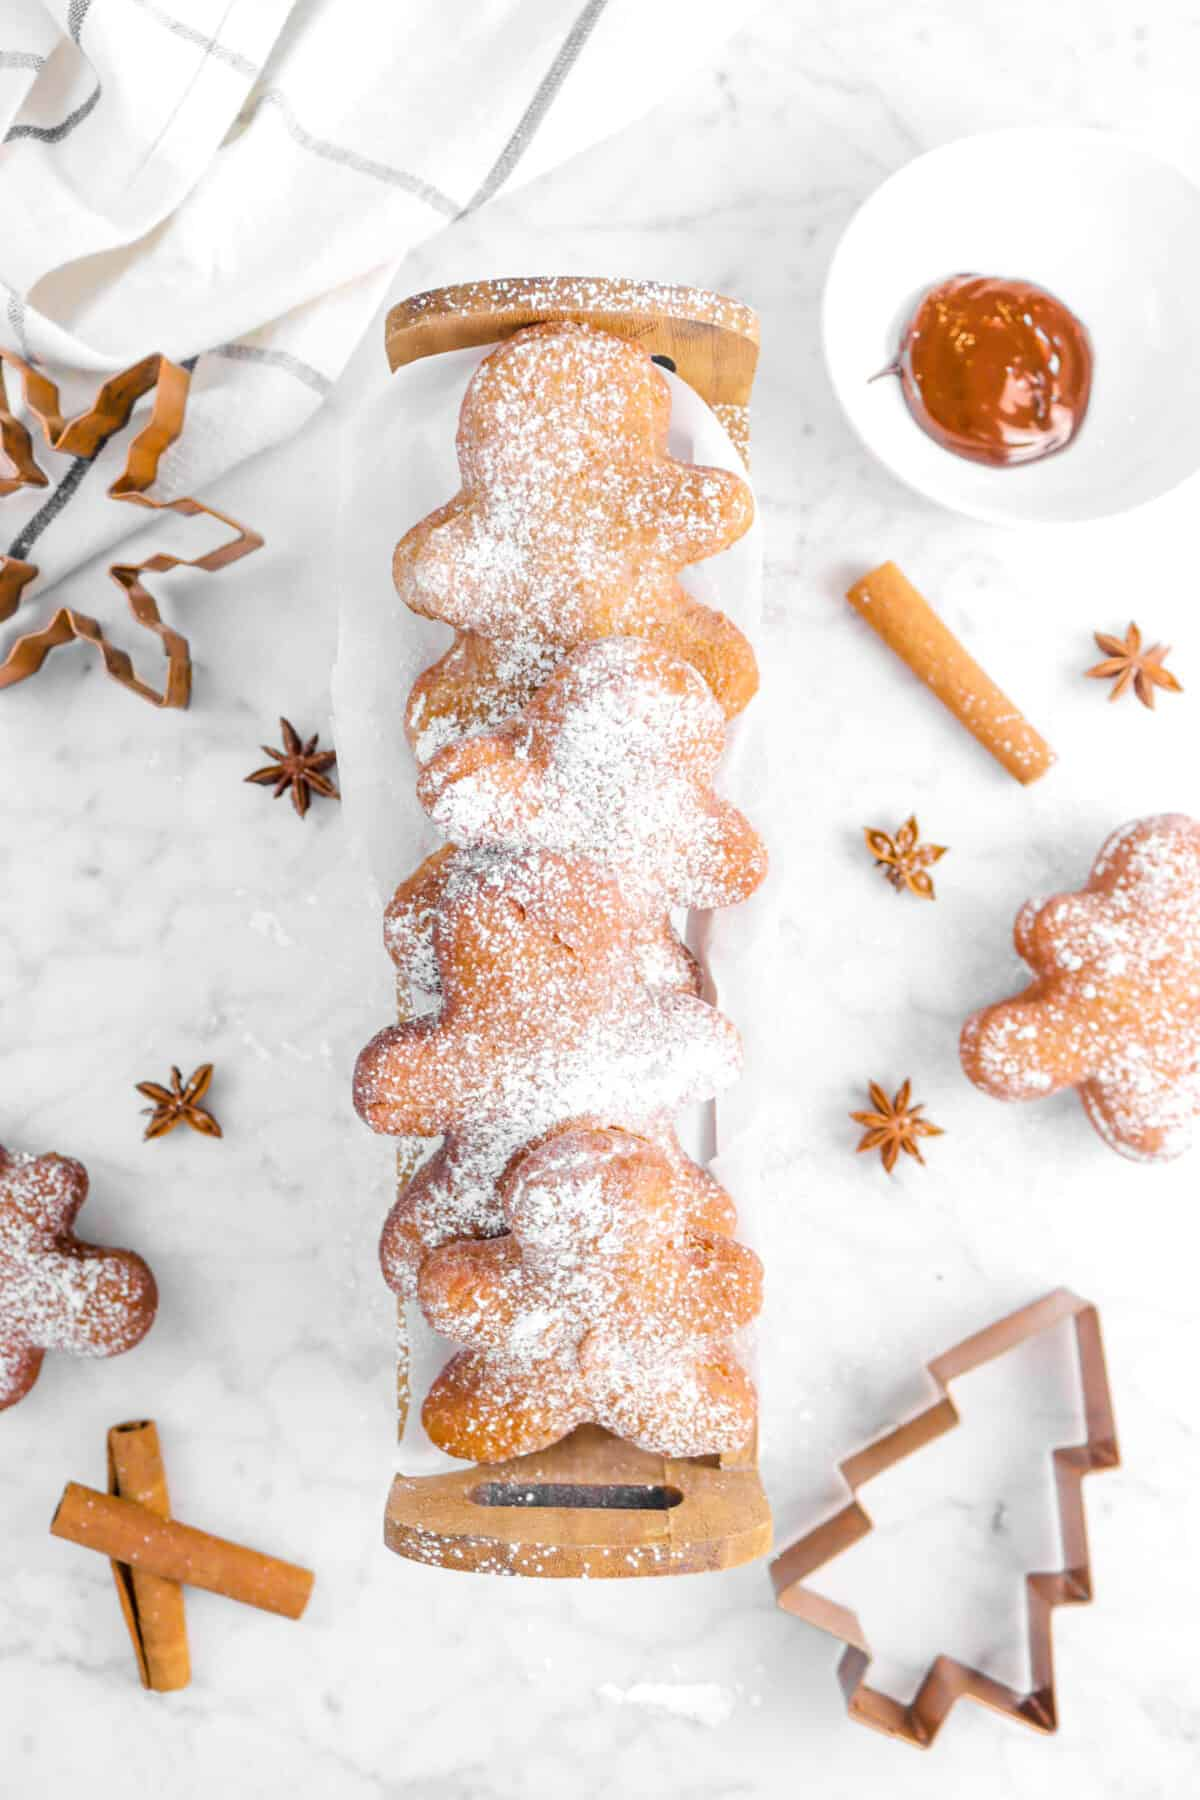 four beignets in wood basket with whole spices and cookie cutters on marble counter